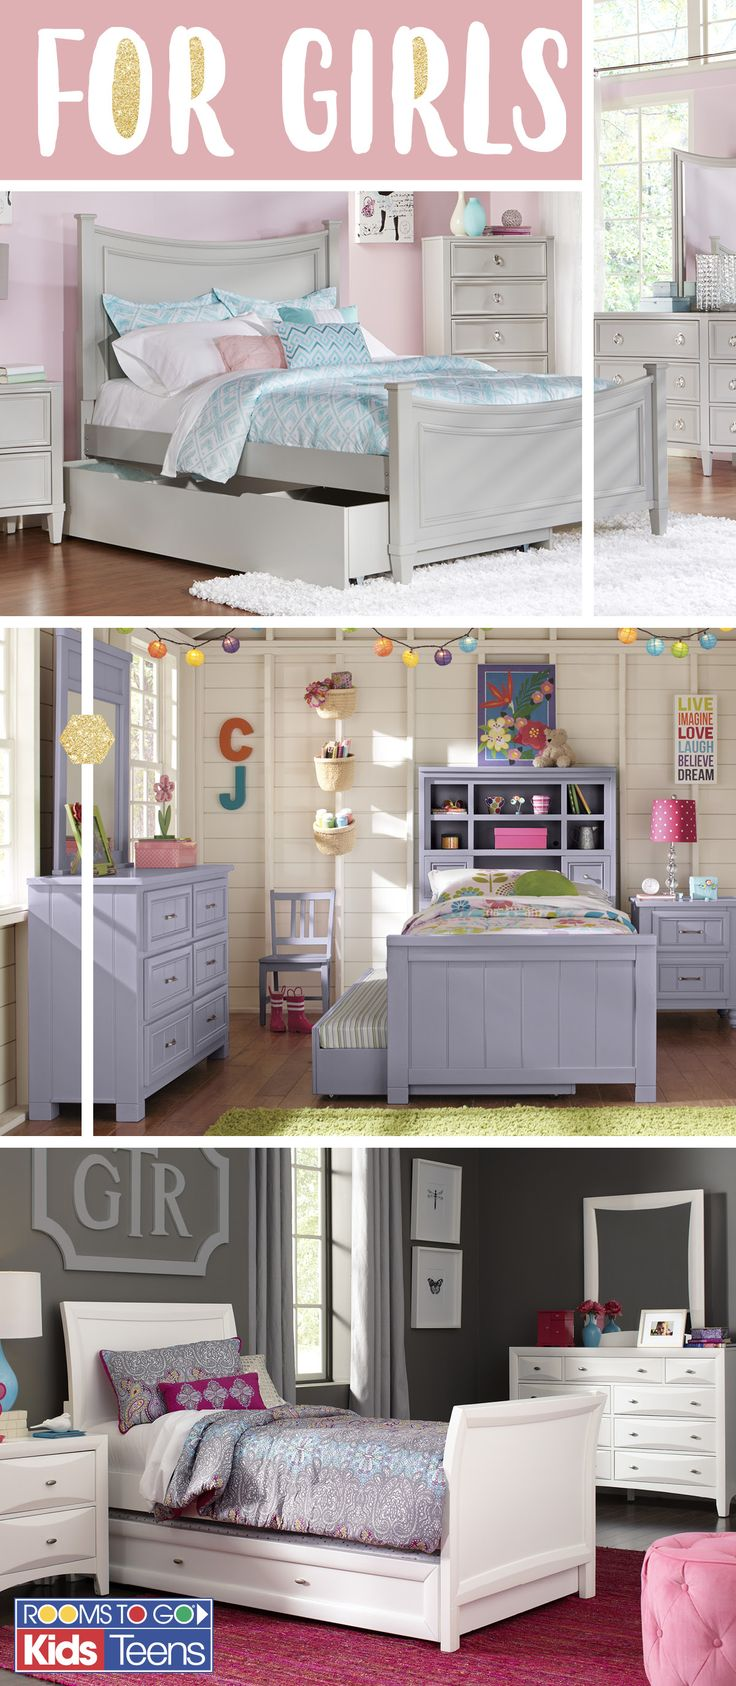 Best Girls Bedroom Sets Ideas On Pinterest Teen Bedroom Sets - Rooms to go kids charlotte